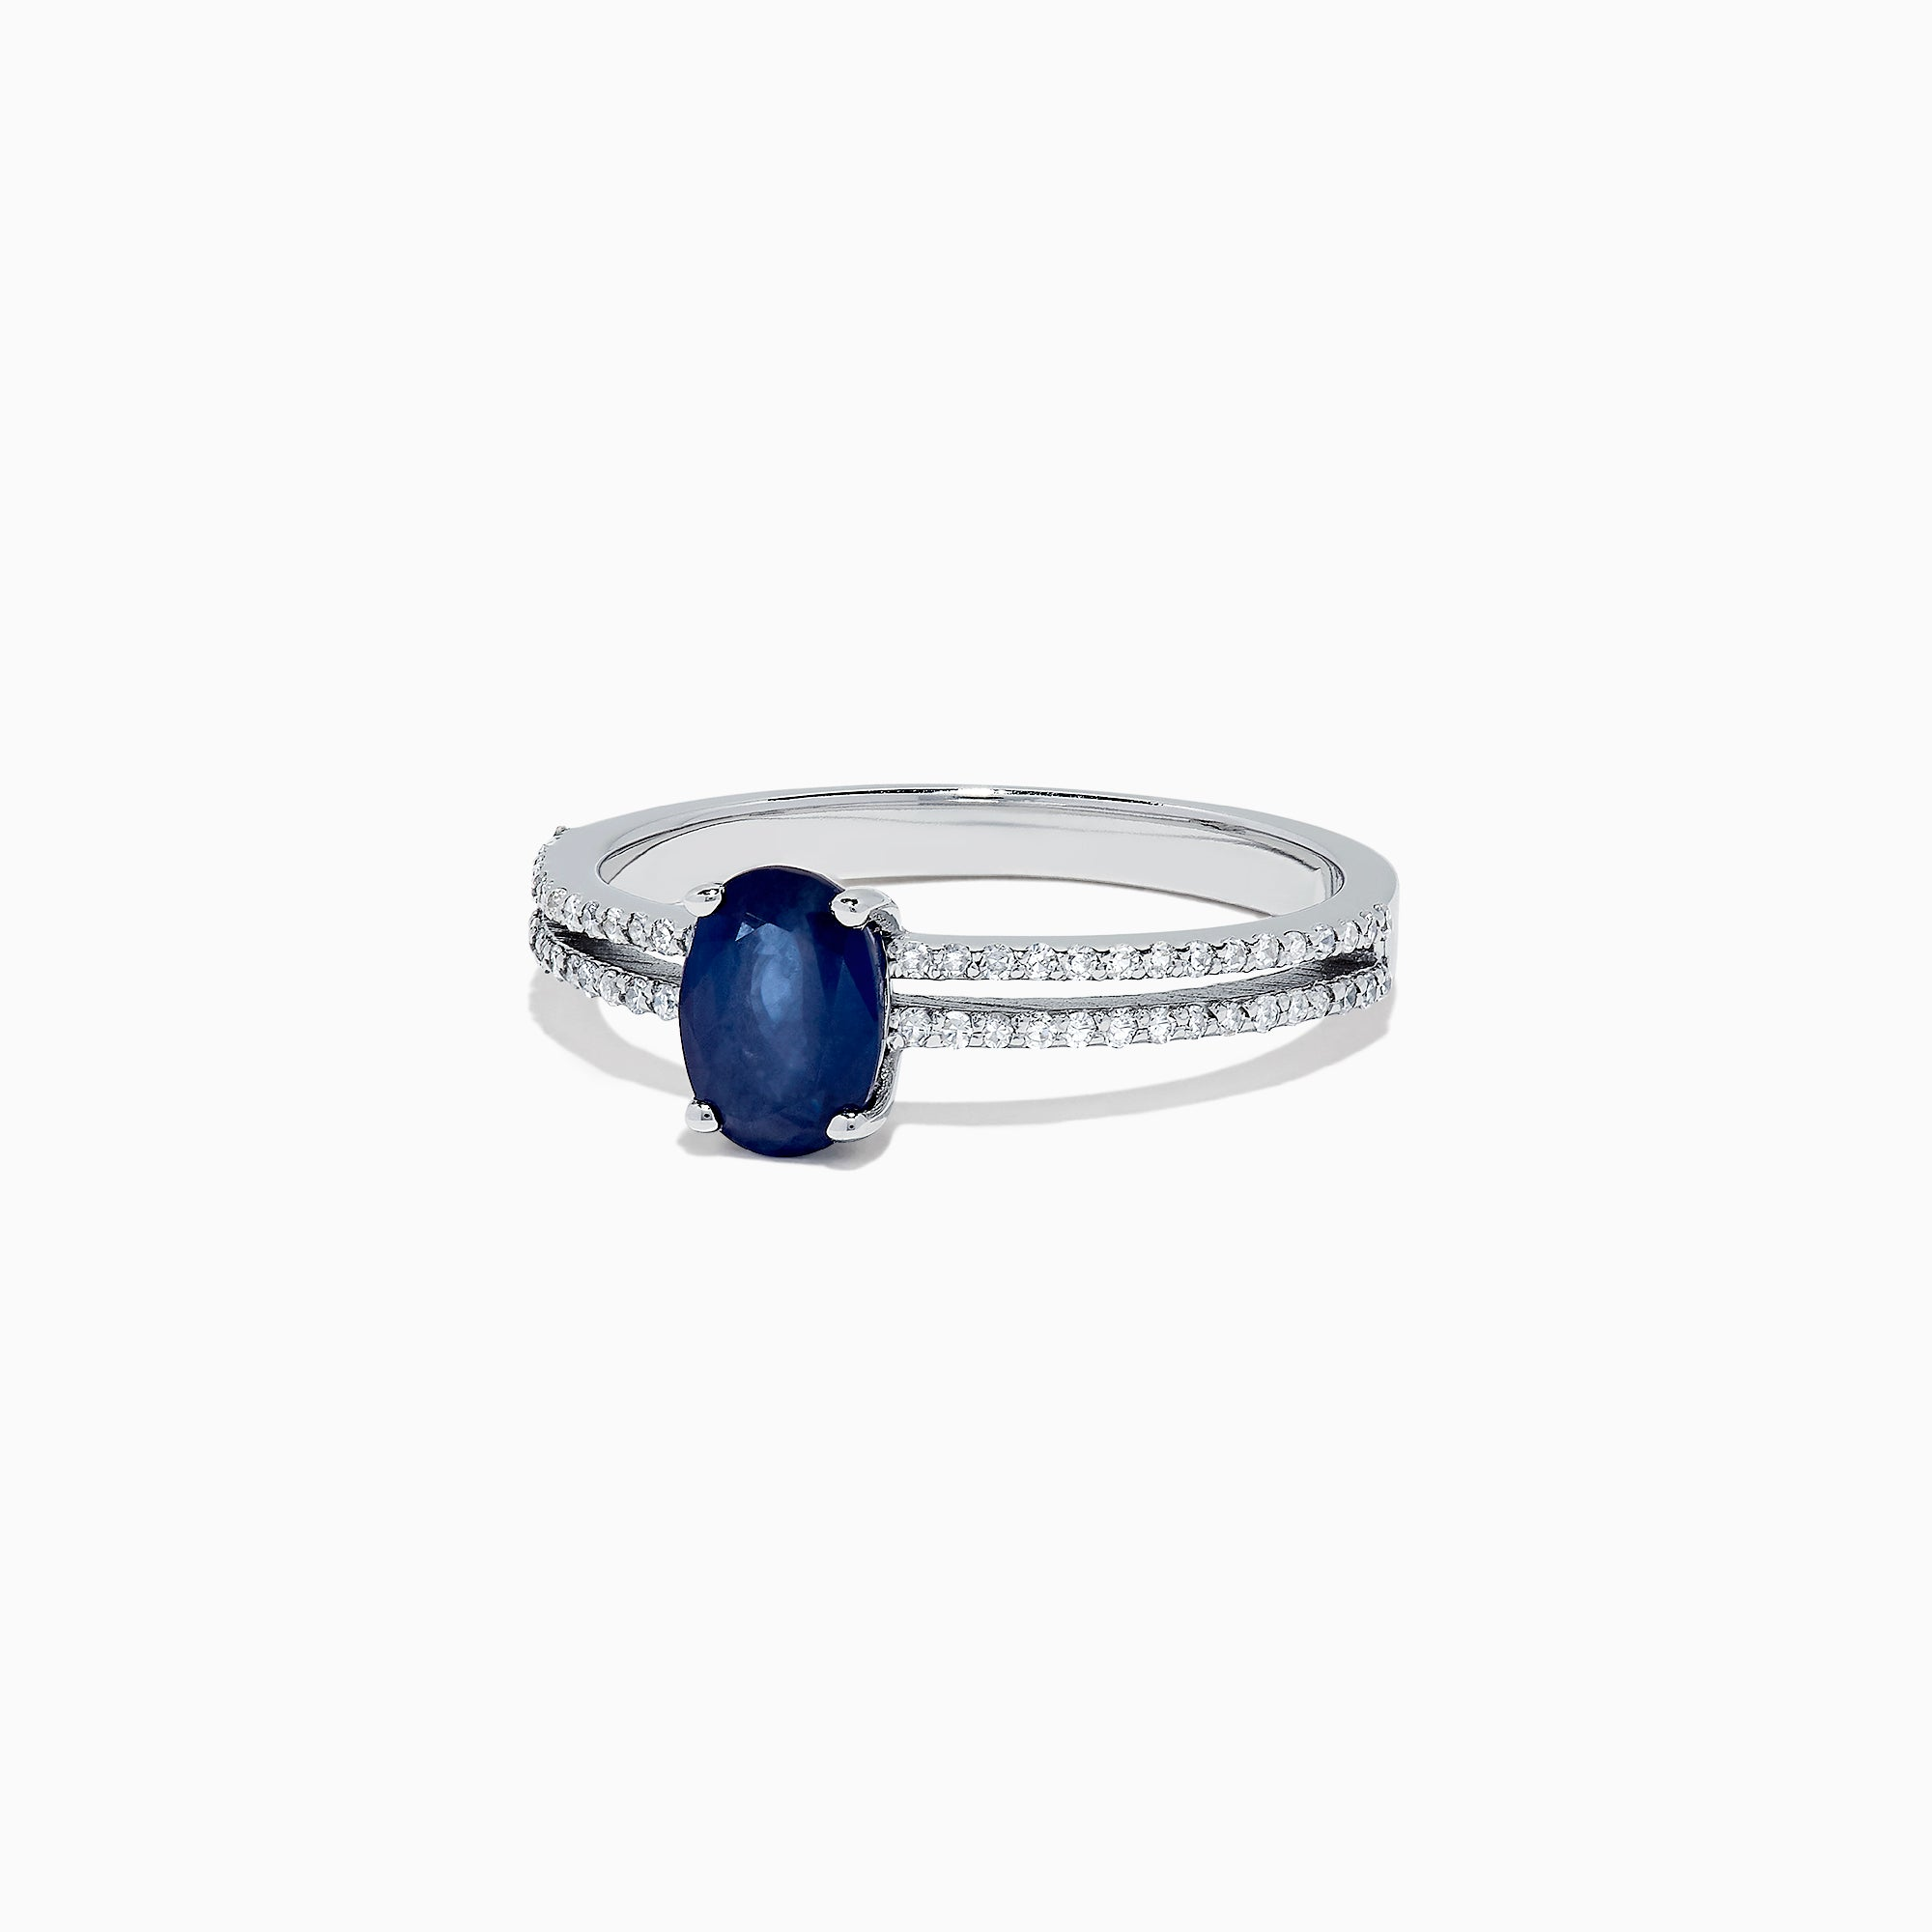 Effy Royale Bleu 14K White Gold Sapphire and Diamond Split Band Ring, 1.13 TCW